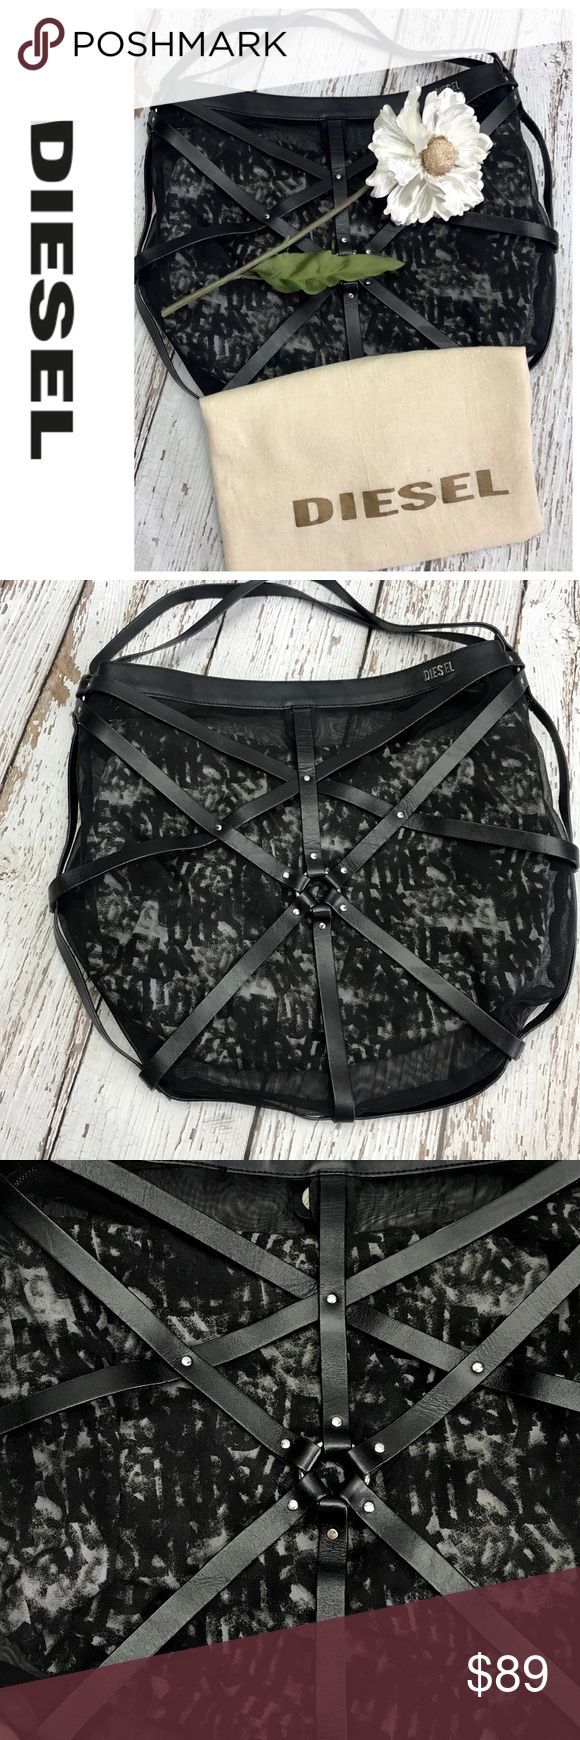 "SALENWOT Diesel Black Leather Tote Bag Gorgeous NWOT Diesel Black Leather Tote Bag 19"" W x 17"" H outside is leather Straps with a mesh inside is lined with Diesel embossed Material comes with dust bag purchased in New York for $389 never used Diesel Bags Totes"